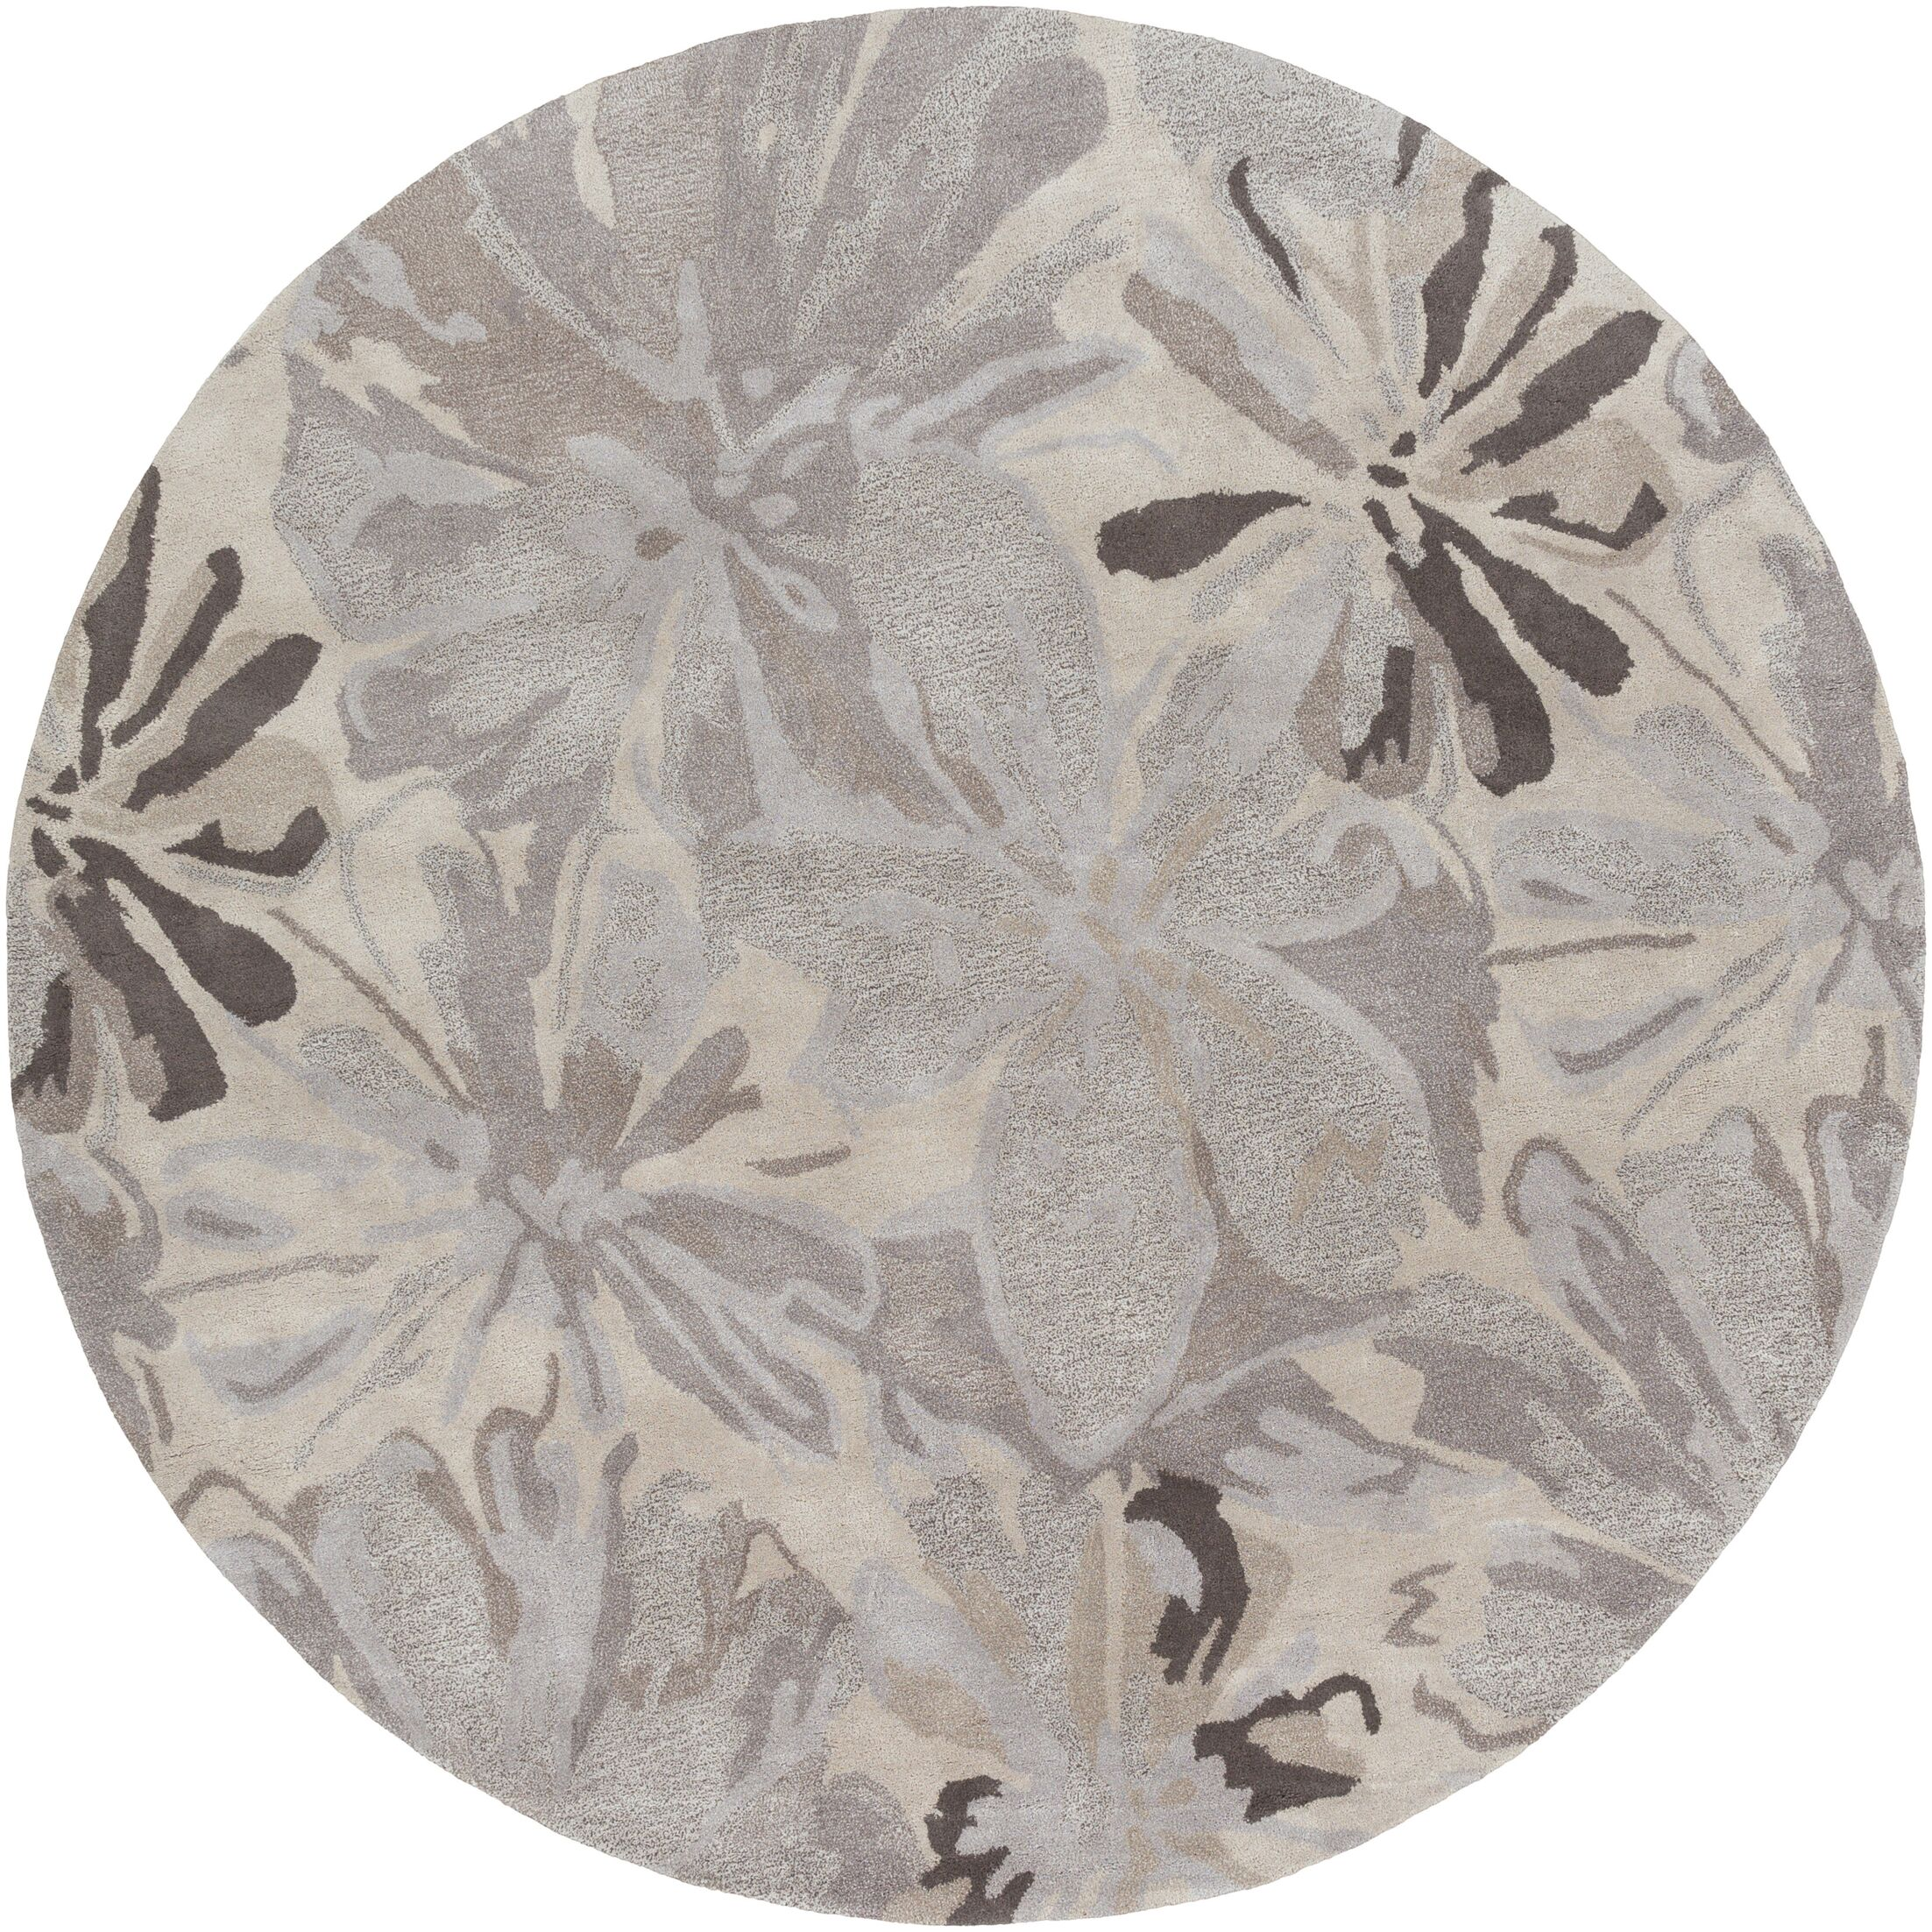 Amice Beige/Gray Area Rug Rug Size: Round 4'